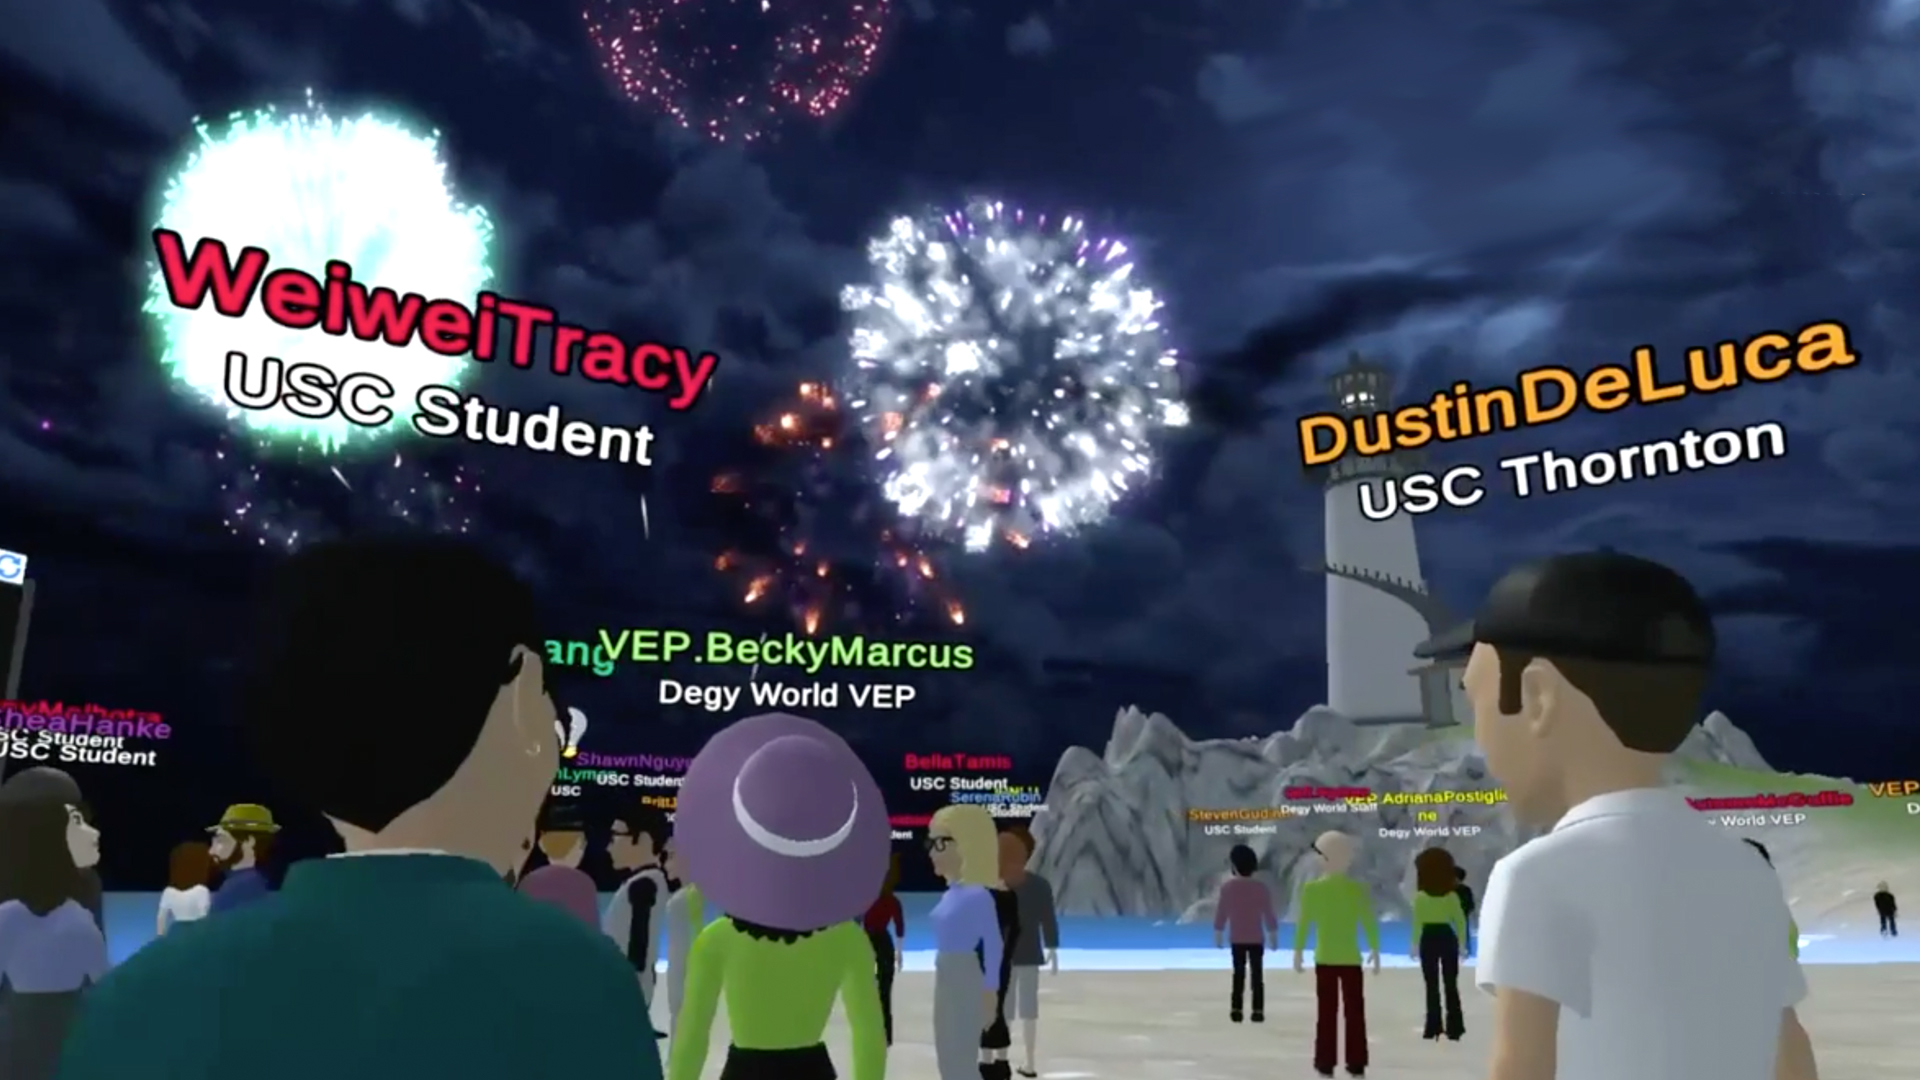 A group of virtual avatars stand together watching an animated fireworks display